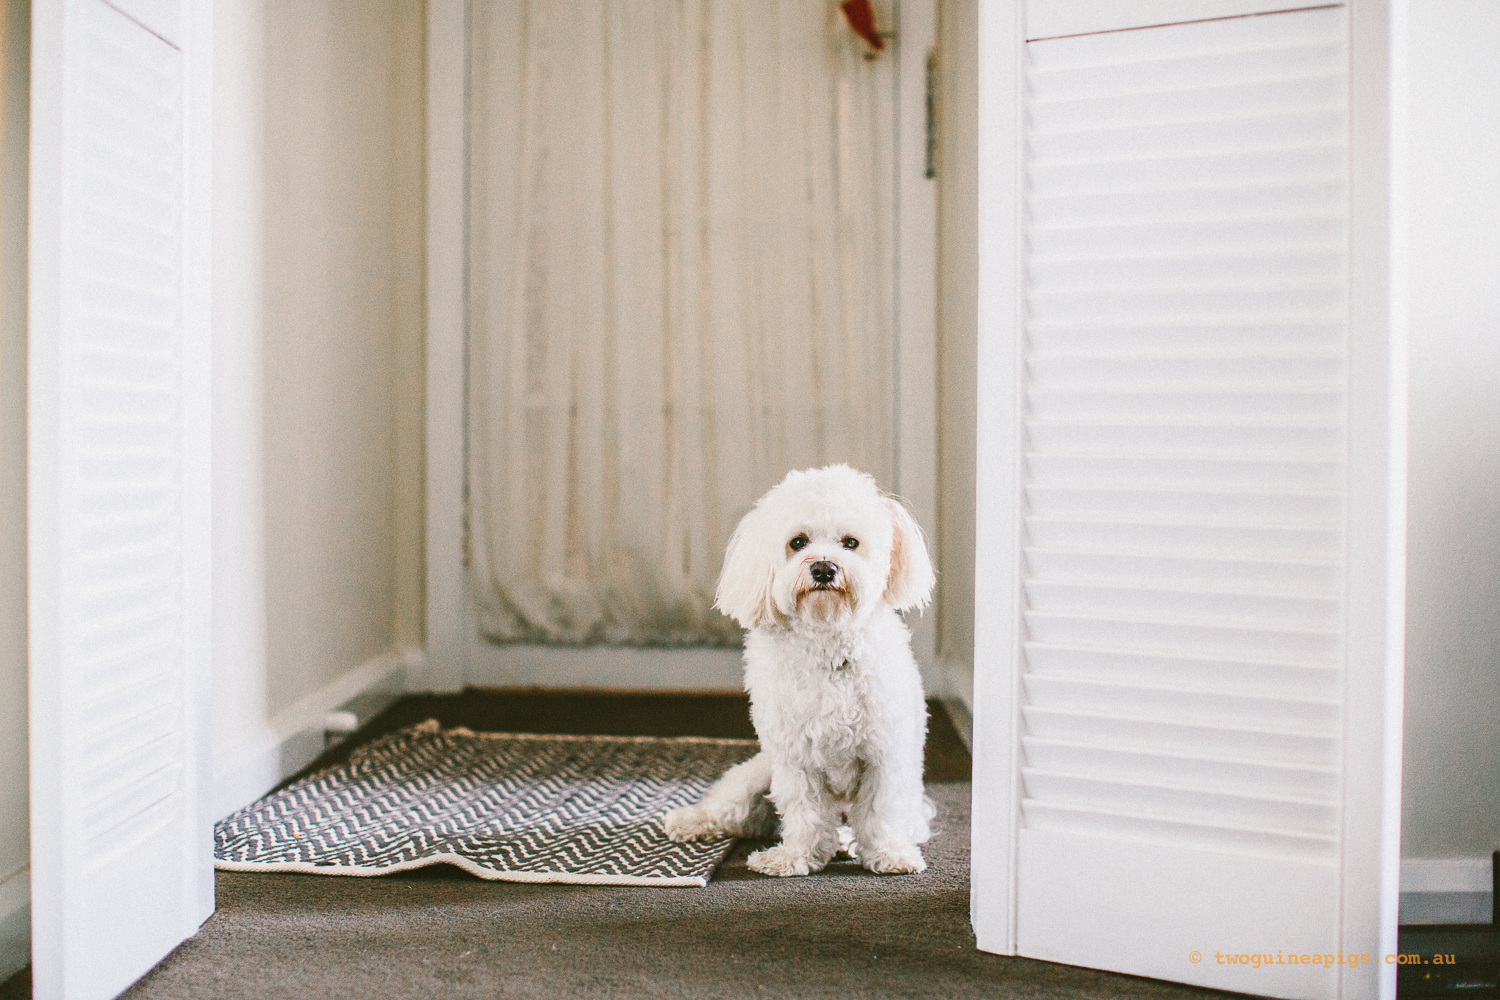 twoguineapigs_pet_photography_dalston_havanese_holiday_day6_dog